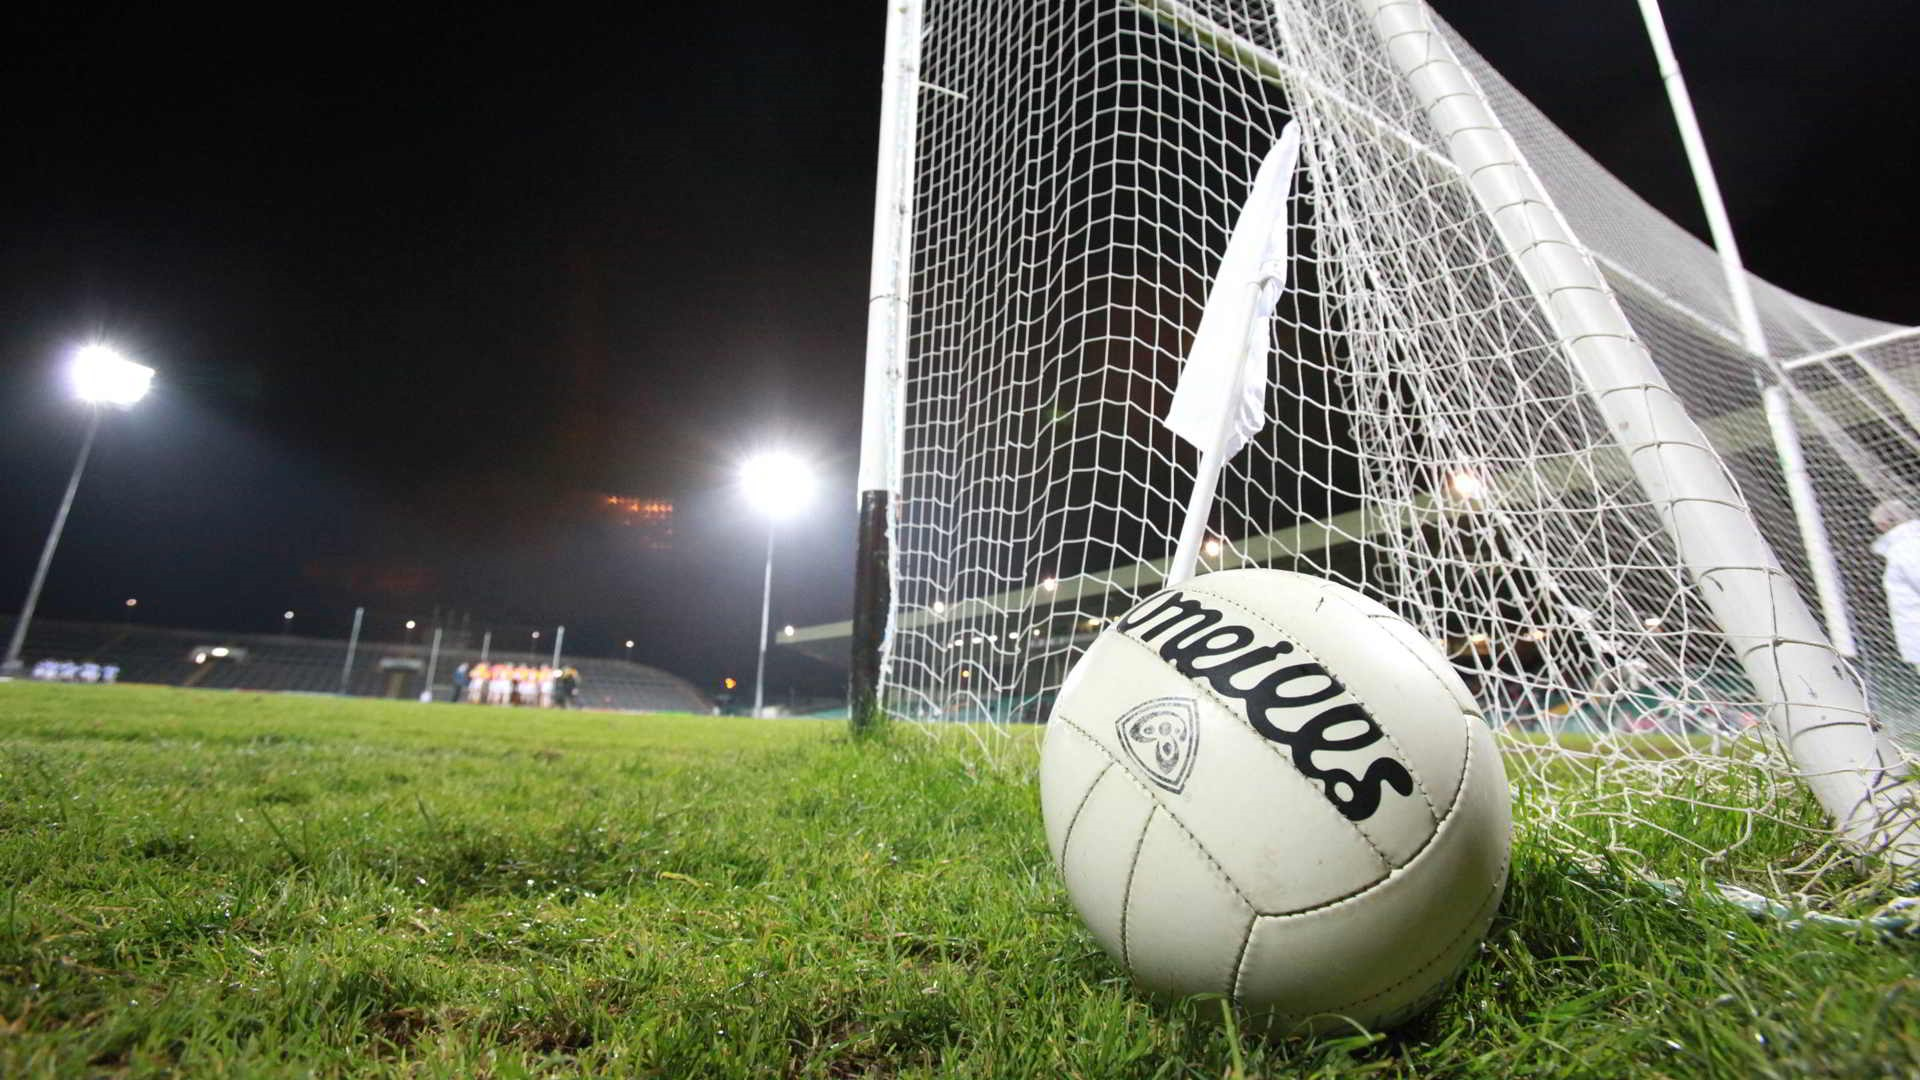 Defending champions advance in County Senior football Championship